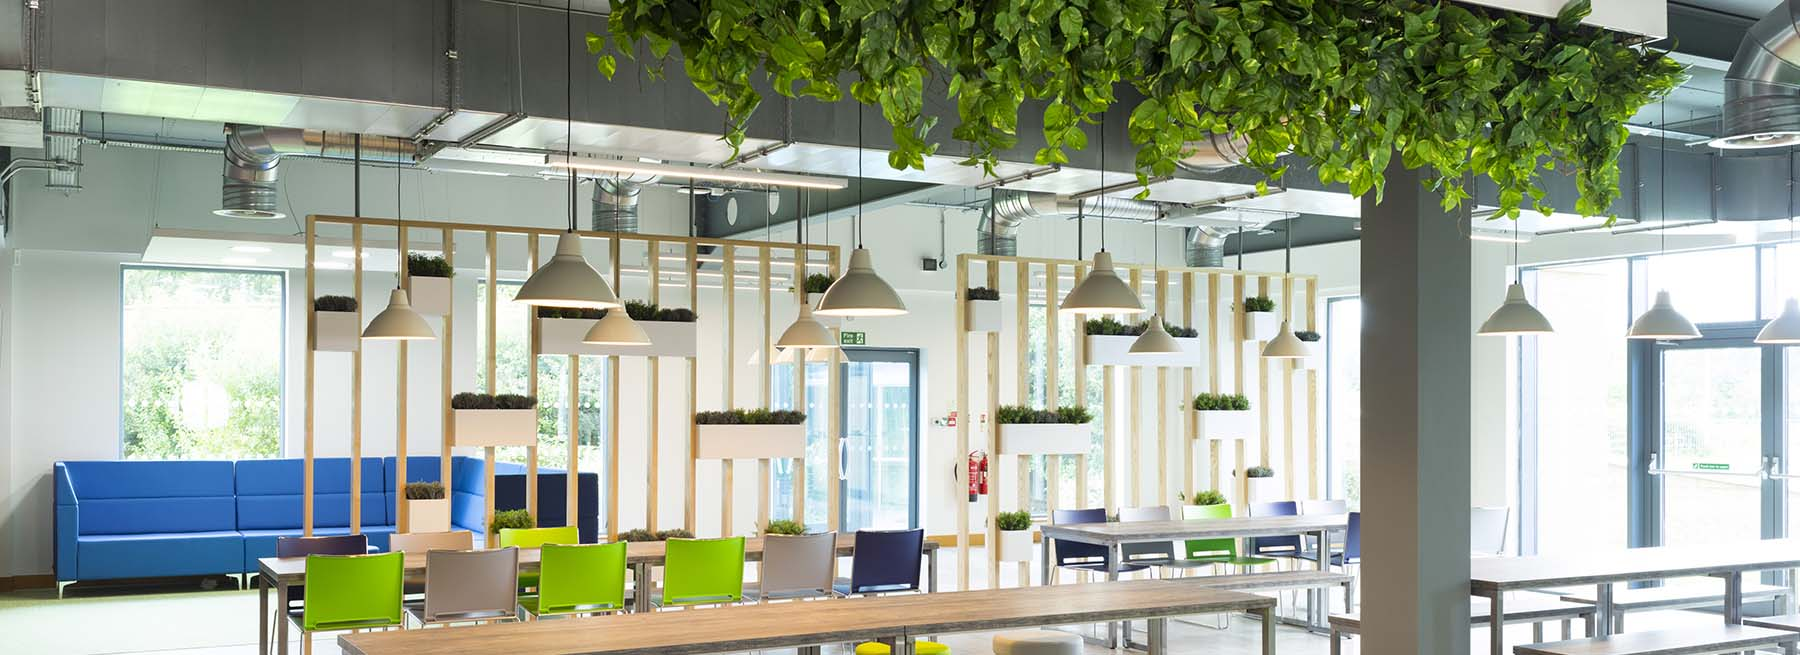 Lush artificial greenery hanging from the ceiling and planters built into timber slatted screen zone breakout space